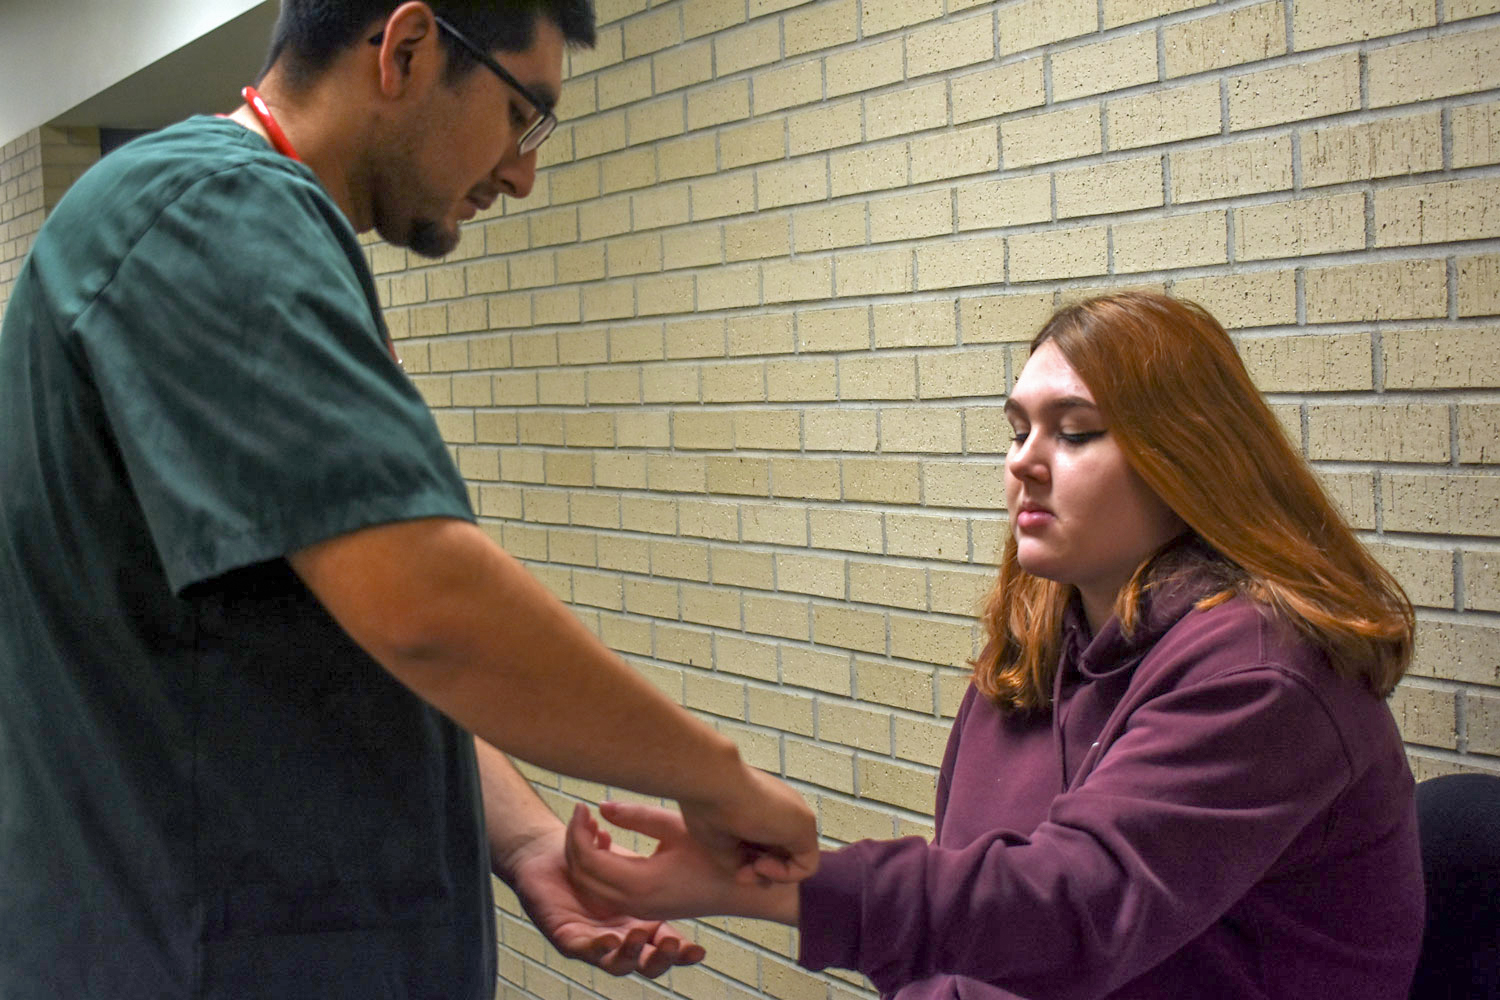 Jaime Torres practices taking pulse and blood pressure. The Liberal nursing major chose to ignore the masculinity stigma of male nurses by focussing on his passion for caregiving.